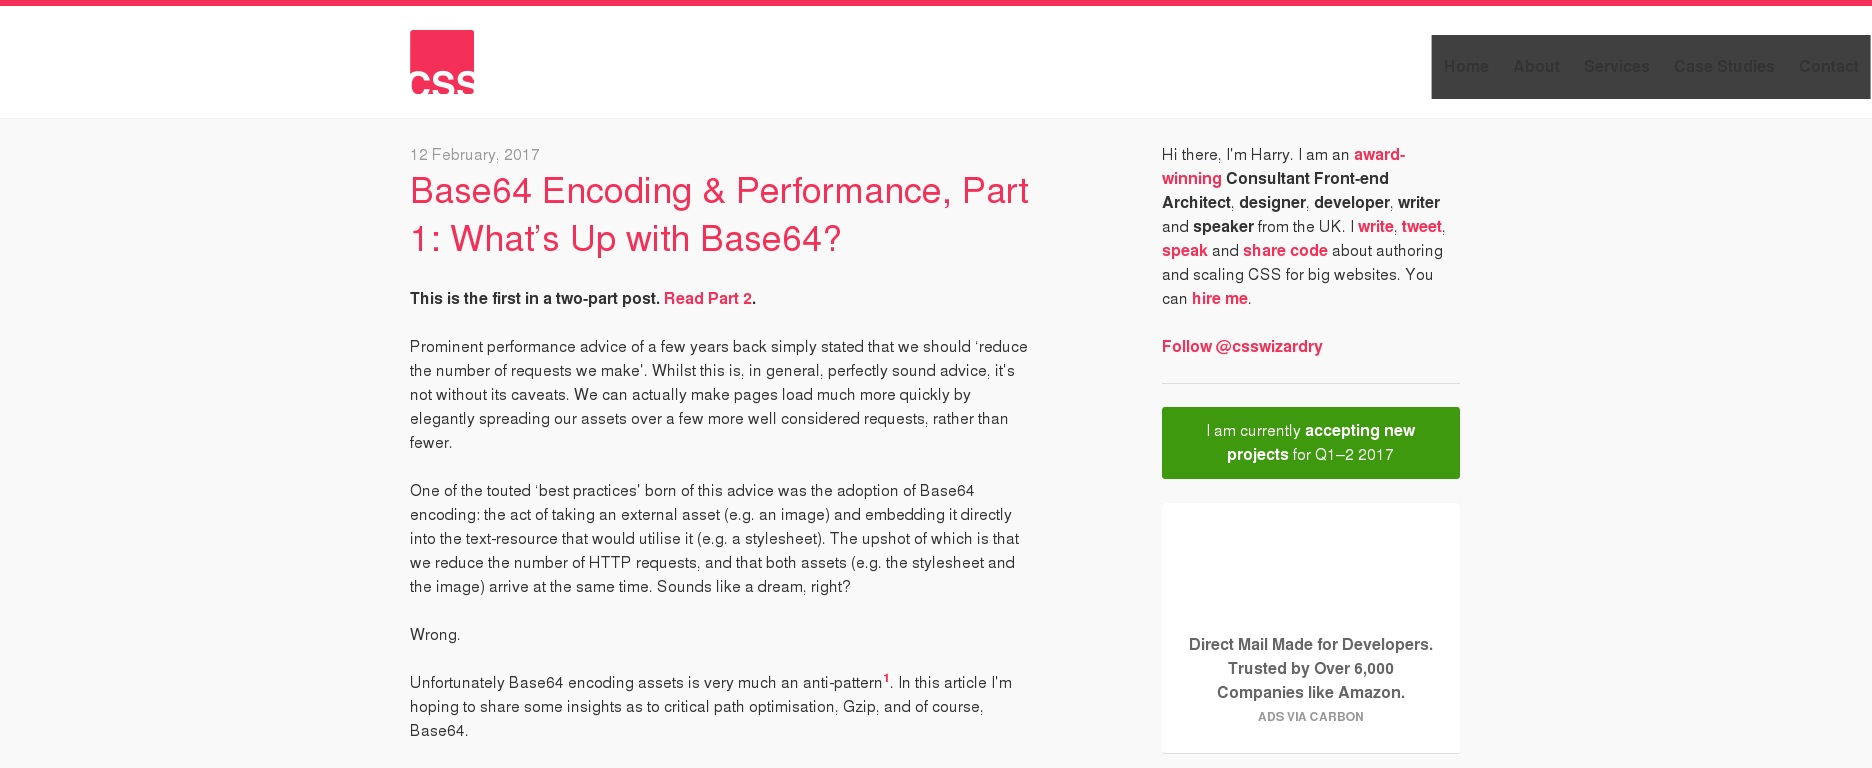 Base64 Encoding & Performance, Part 1: What's Up with Base64